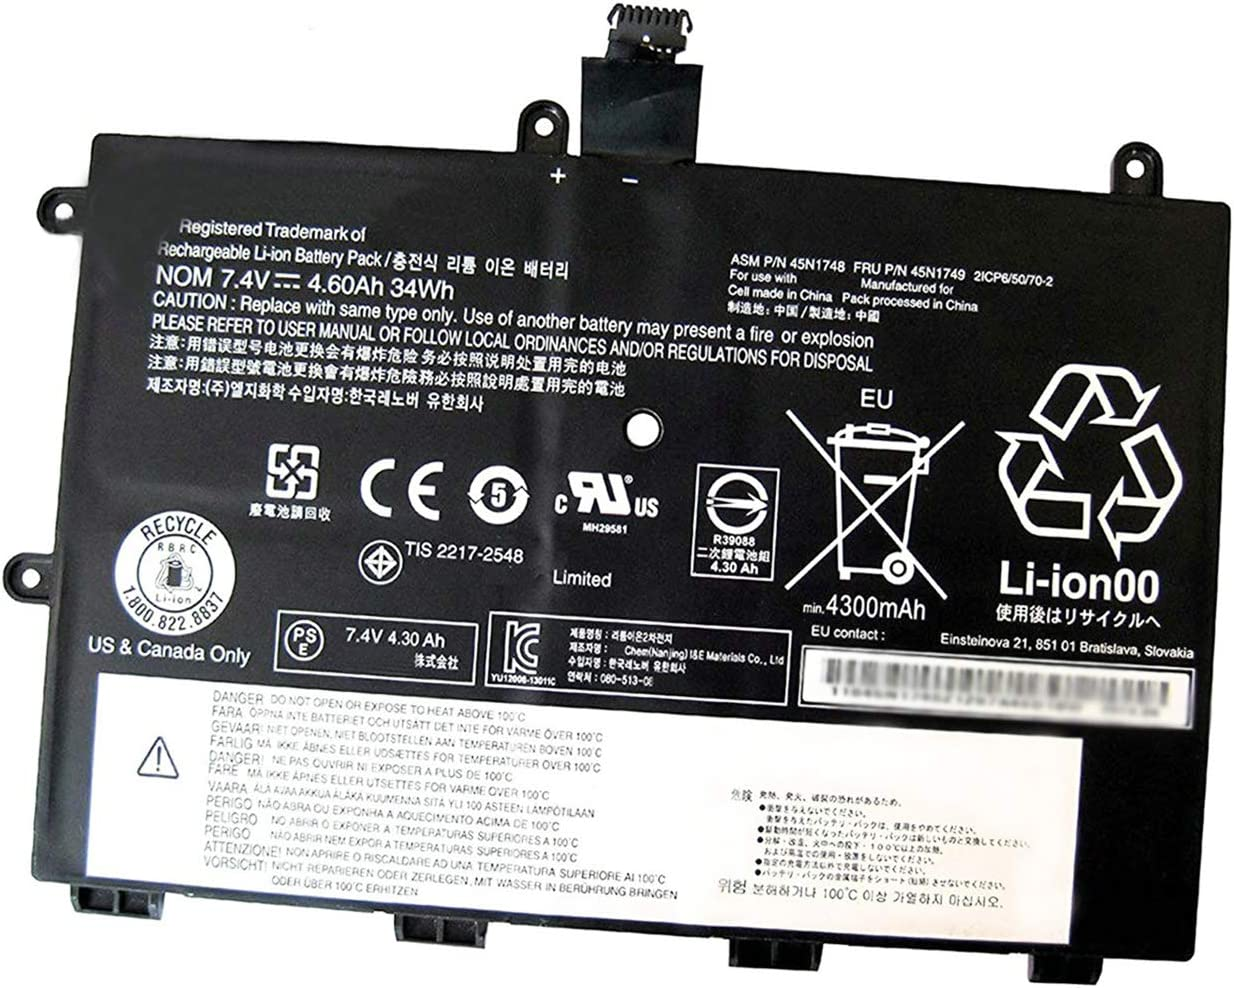 BOWEIRUI 45N1748 (7.4V 34Wh 4600mAh) Laptop Battery Replacement for Lenovo ThinkPad Yoga 11E Series Notebook 45N1749 45N1750 45N1751